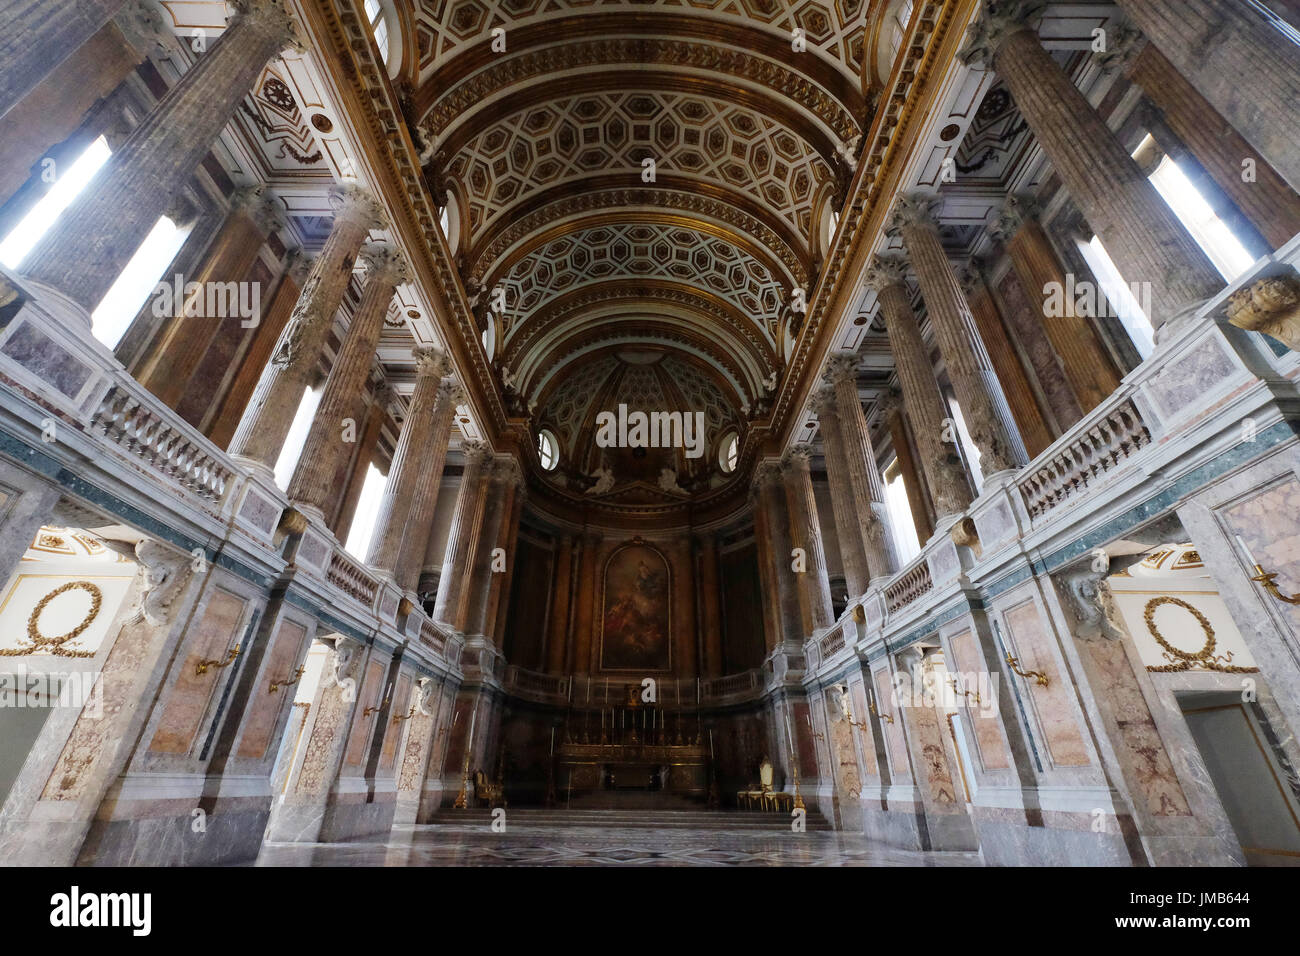 The Palatine Chapel in Royal Palace of Caserta, Campania, Italy Stock Photo